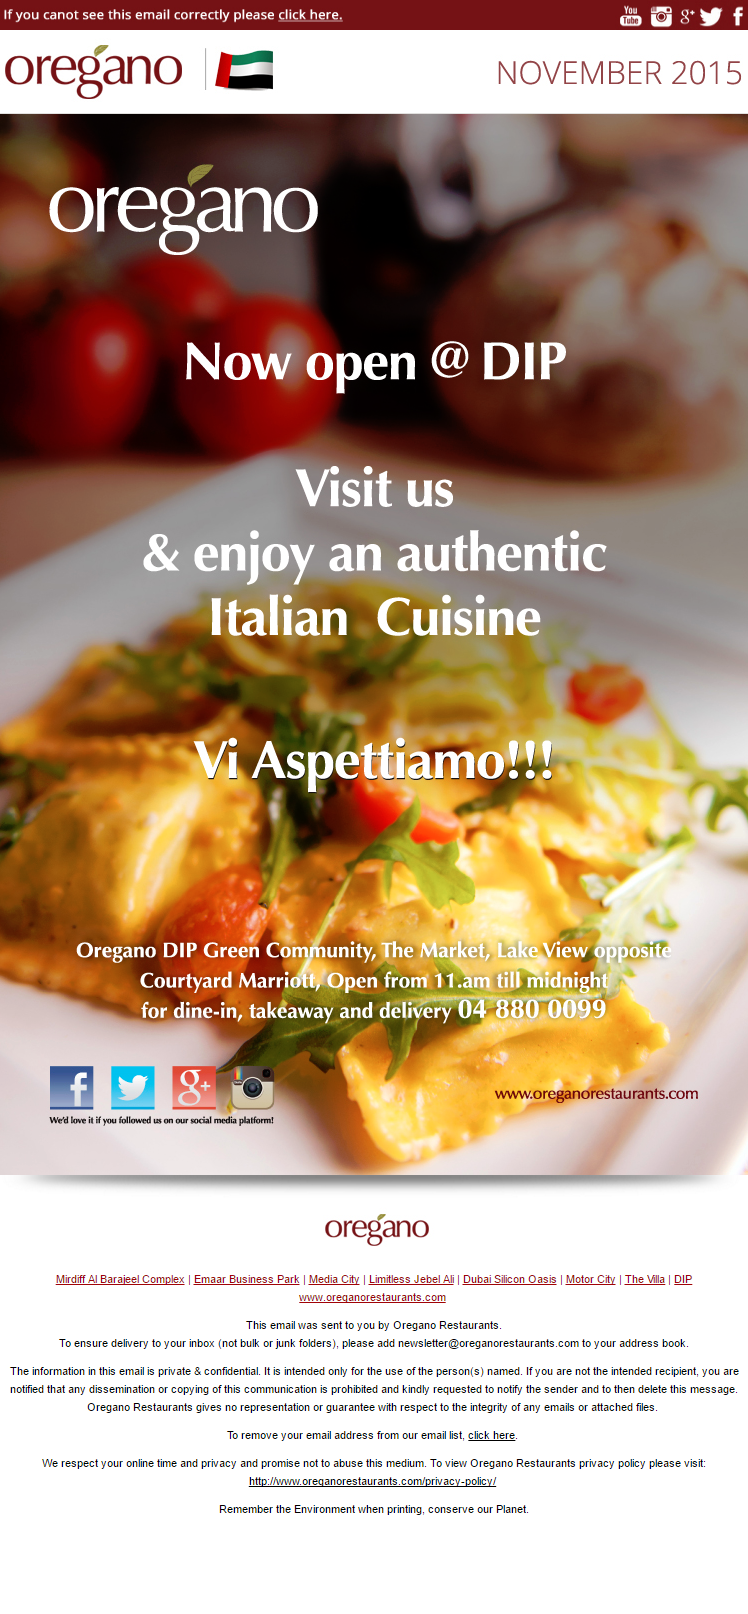 screencapture-oreganorestaurants-newsletter-2015-november-1475675622449